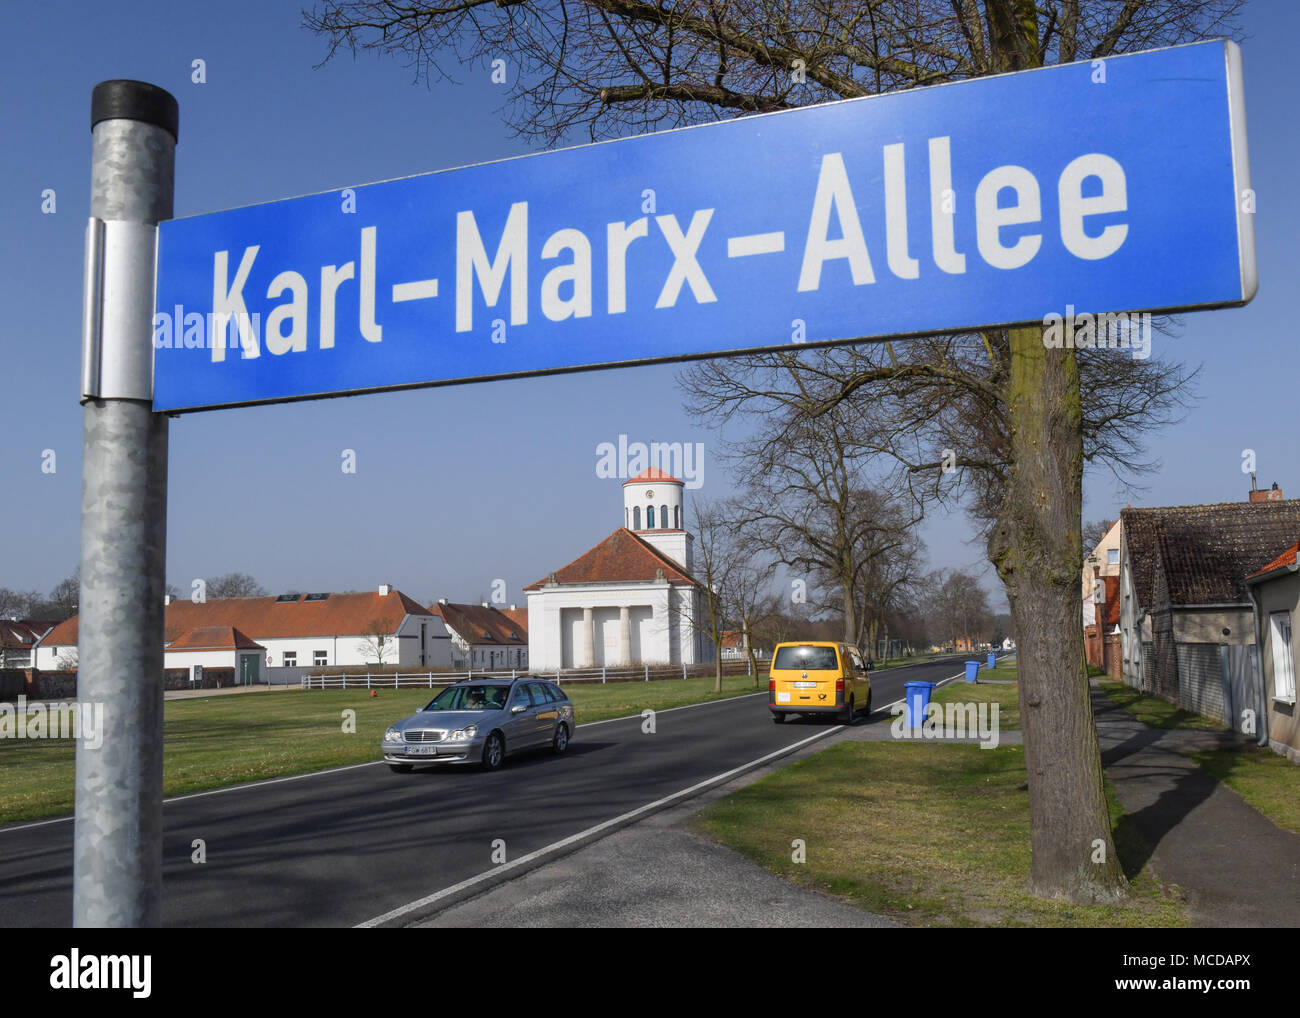 10 April 2018, Germany, Neuhardenberg: A street signe reads Karl-Marx-Allee. The town was previoulsy known as Marxwalde after German philosopher, economist and social theorist Karl Marx (May, 05 1818 - March, 14 1883) during the GDR era and renamed to Neuhardenberg after the fall of the Berlin Wall. Photo: Patrick Pleul/dpa-Zentralbild/dpa Stock Photo